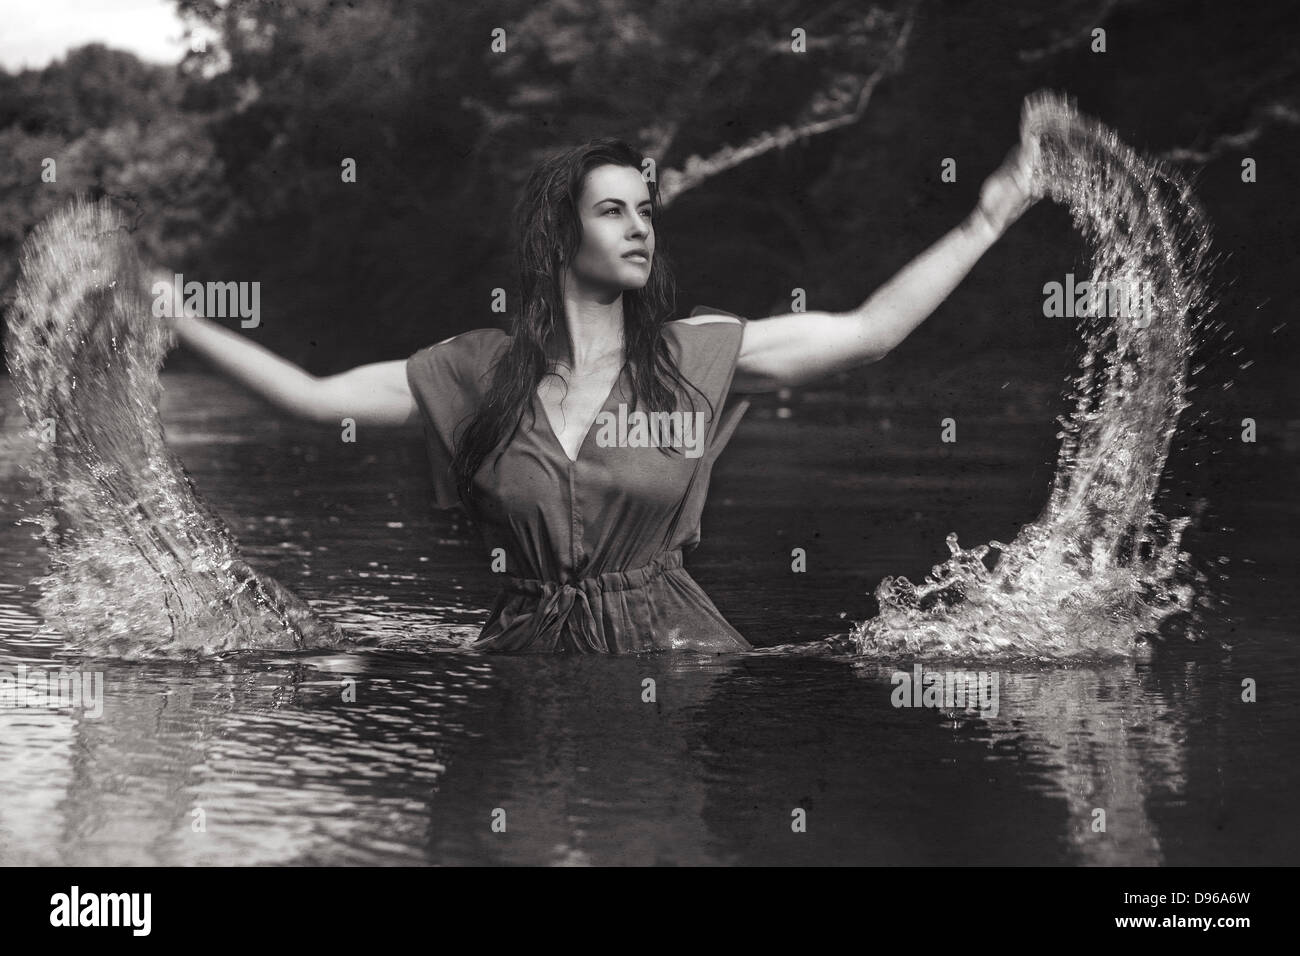 Woman splashing water out of river - Stock Image